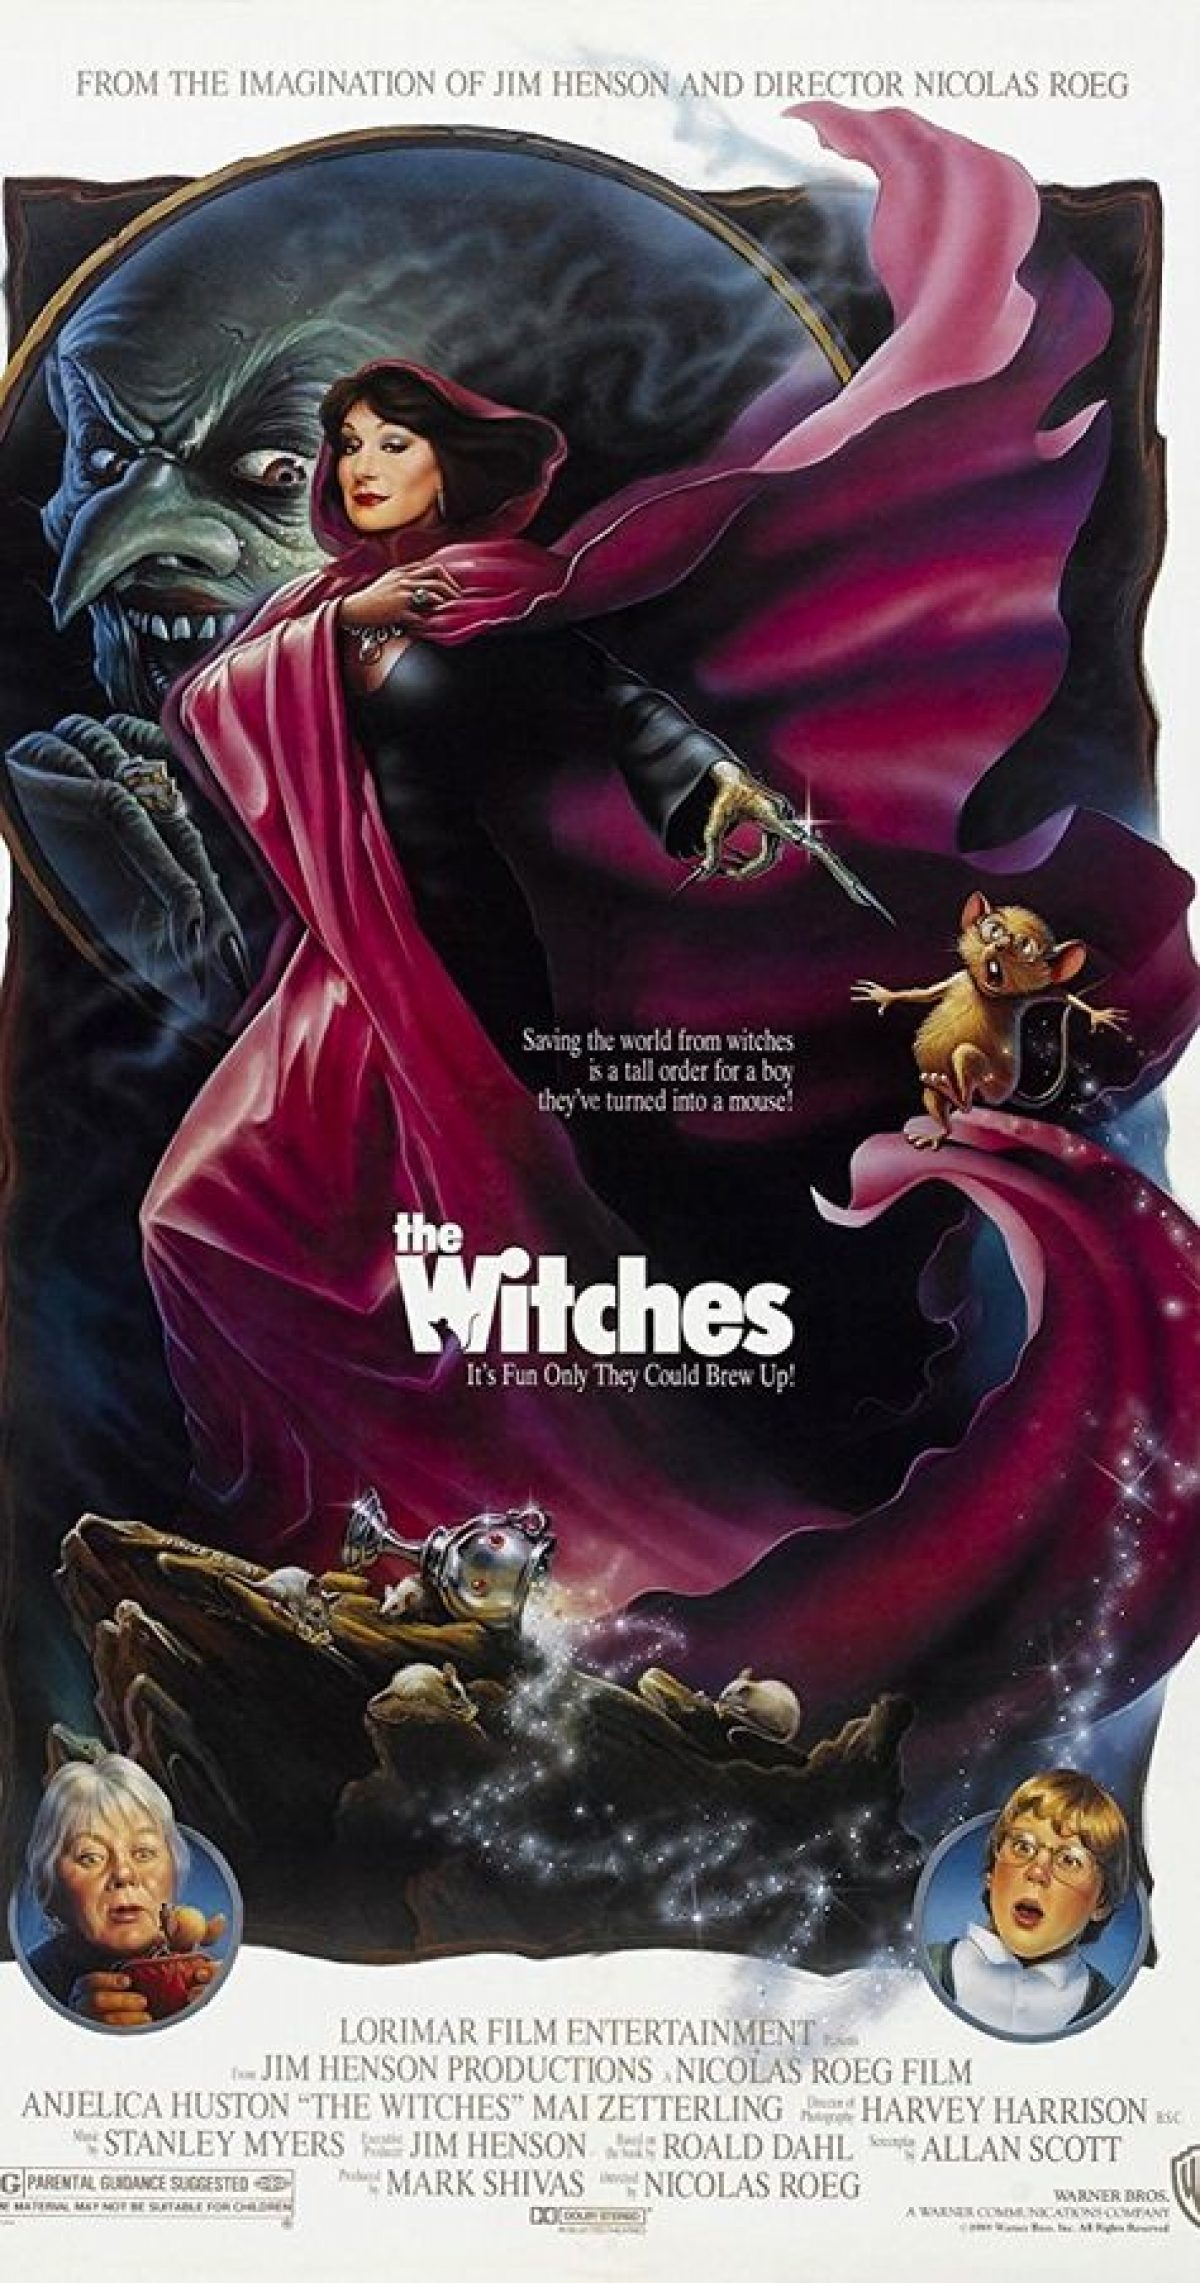 The Witches Cast Plot Release Date Director Imdb And Further Updates What Are The 5 Most Scariest Movies On Netflix Does The Wiches Have A Comic Element The Global Coverage